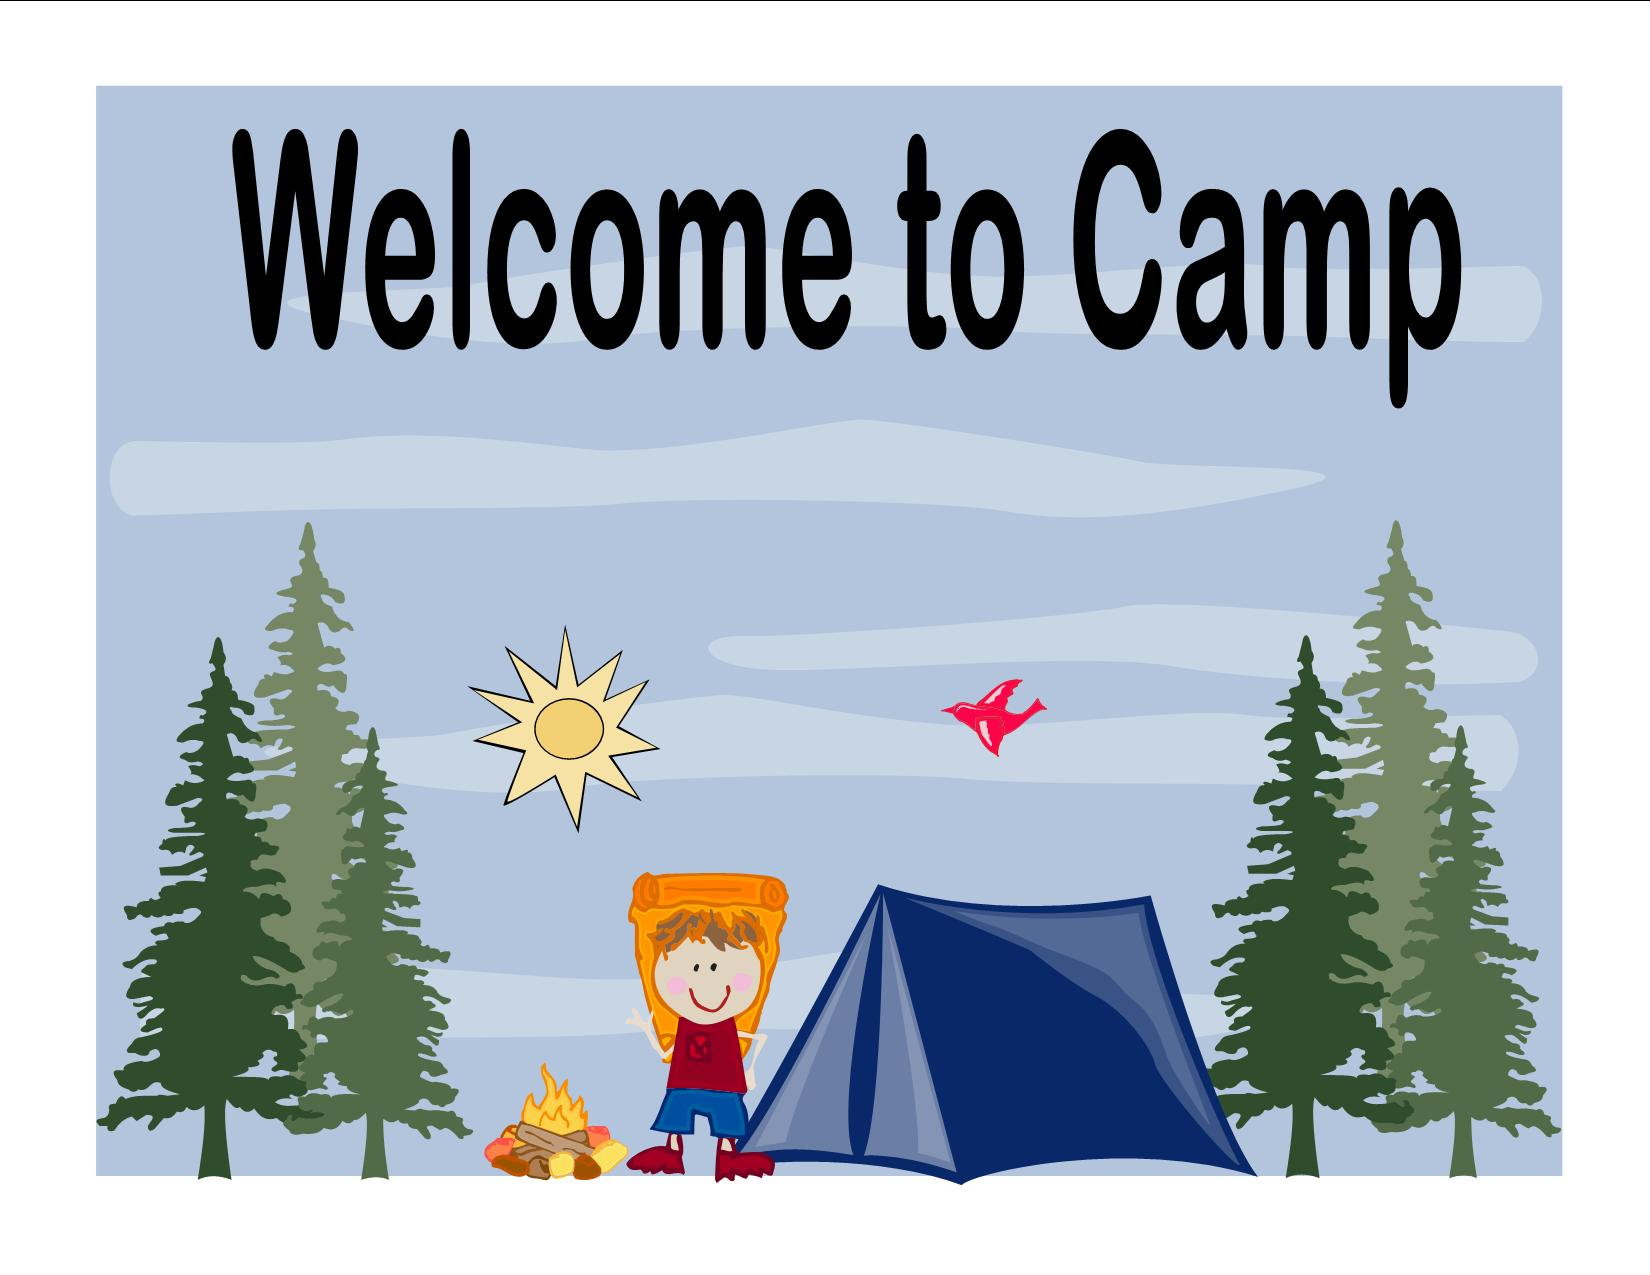 Camp clipart camp sign. Preparing for summer archives